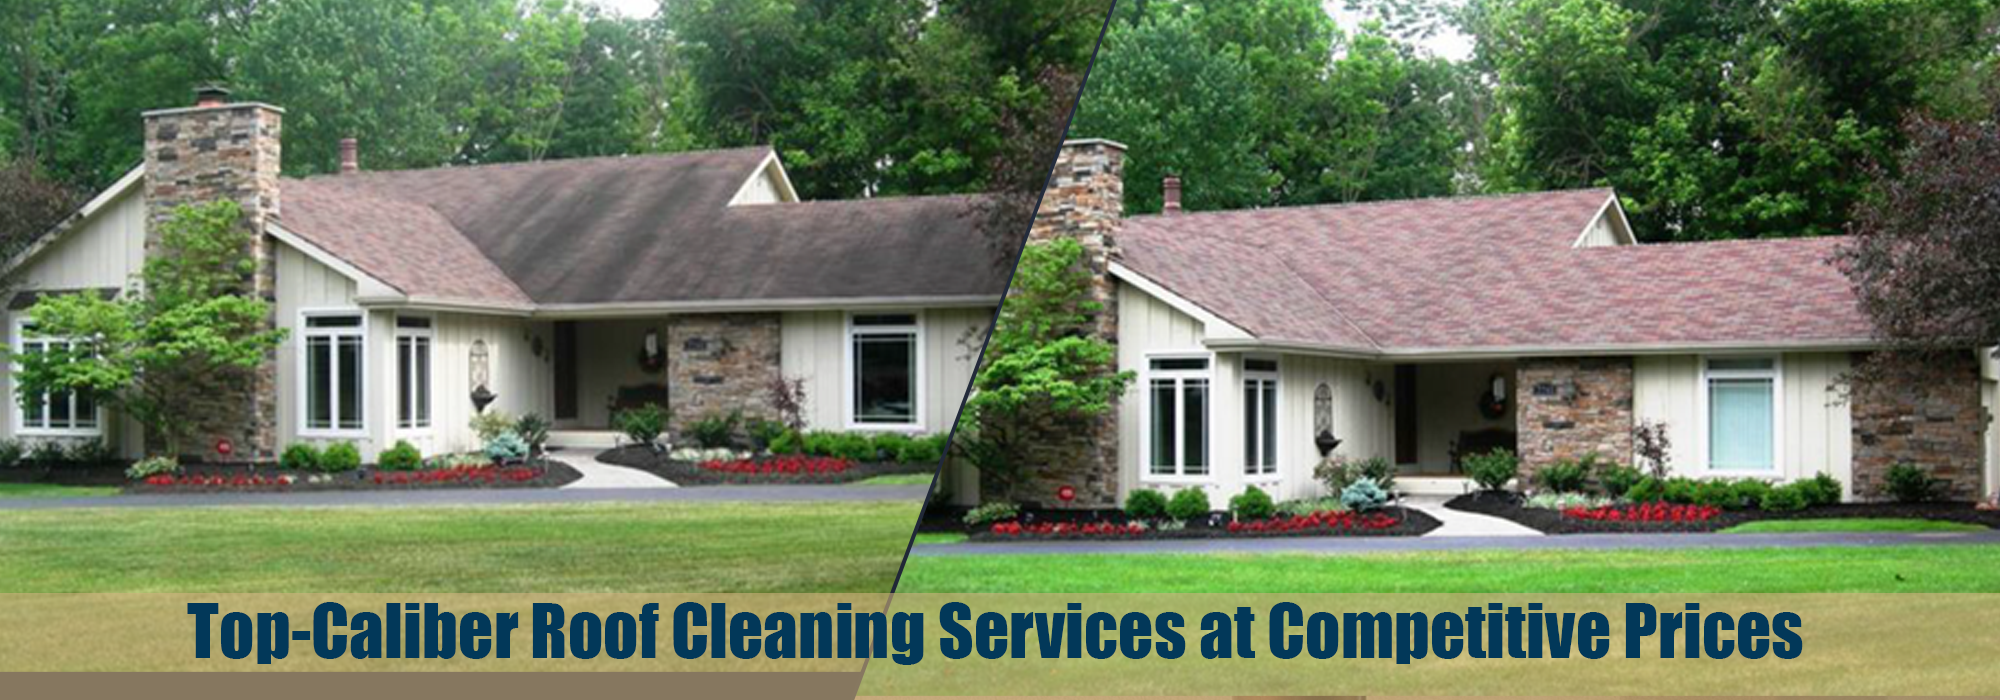 Professional Roof and Cleaning Services